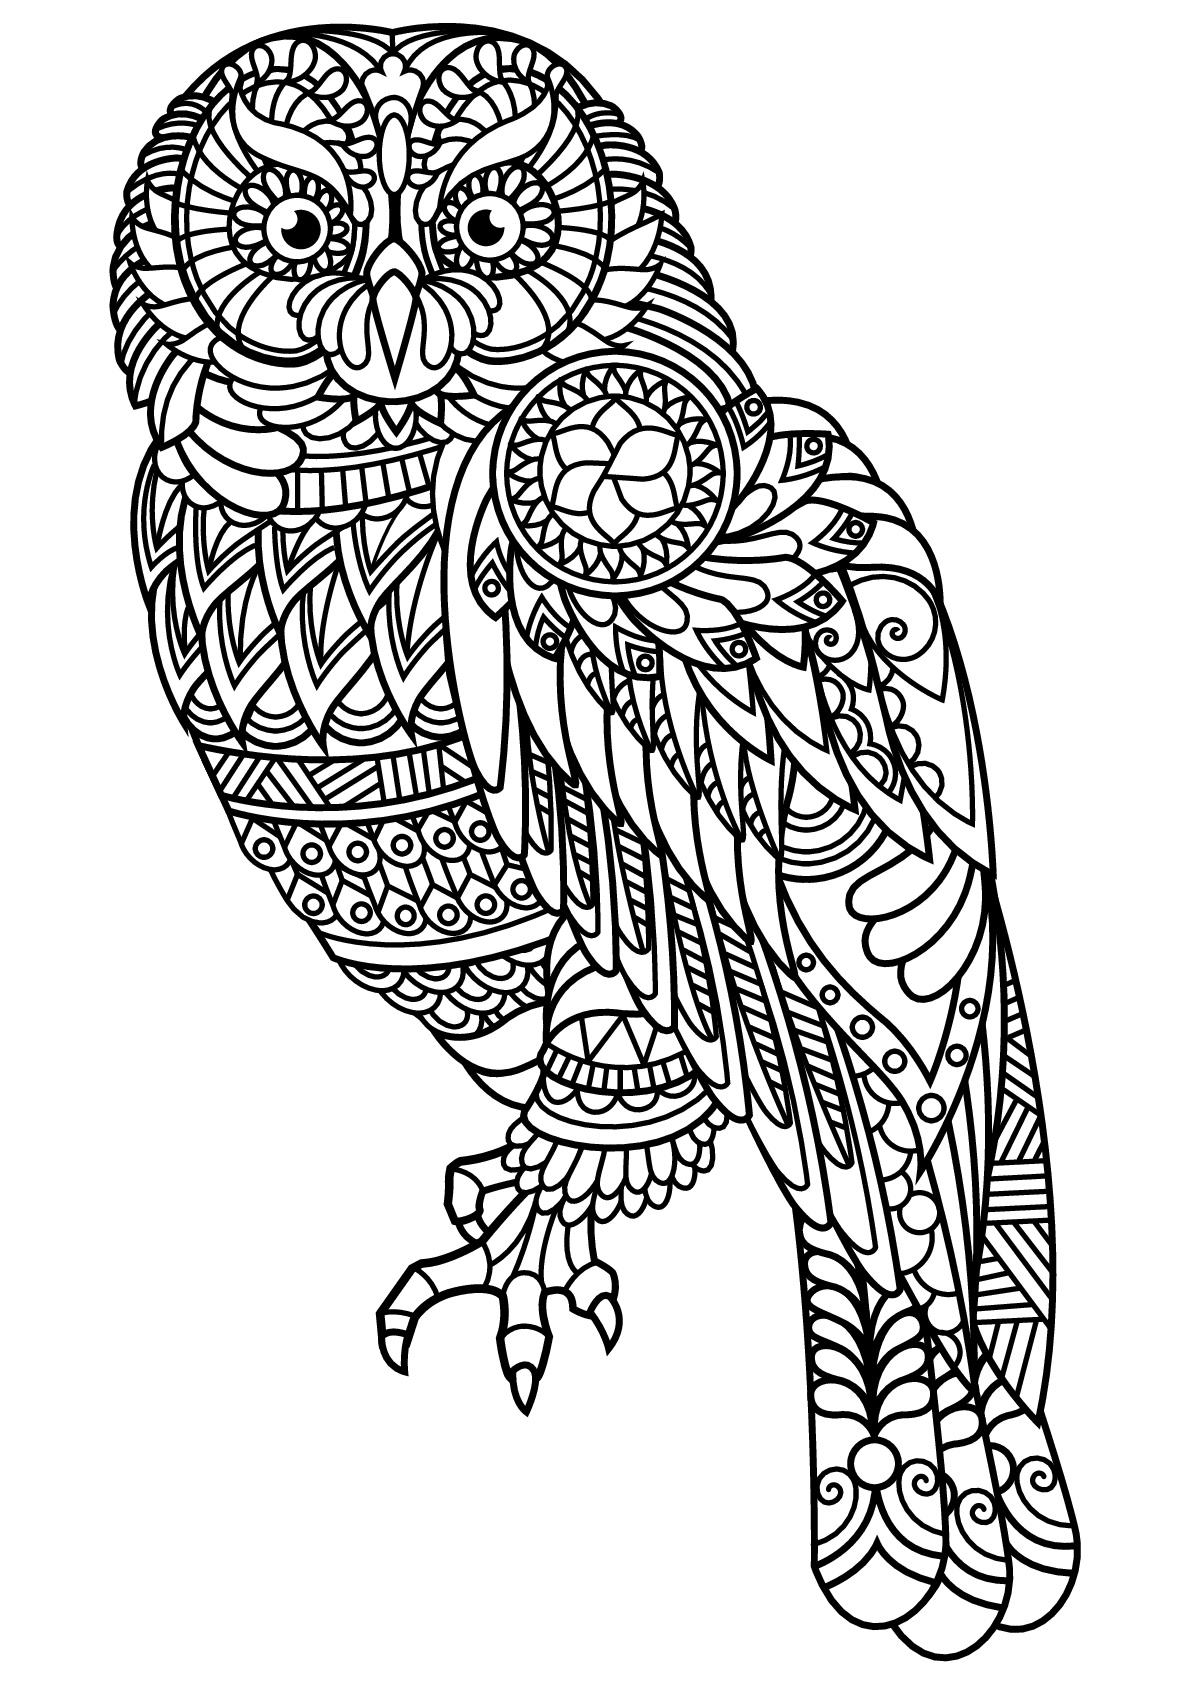 owl coloring owls for kids owls kids coloring pages coloring owl